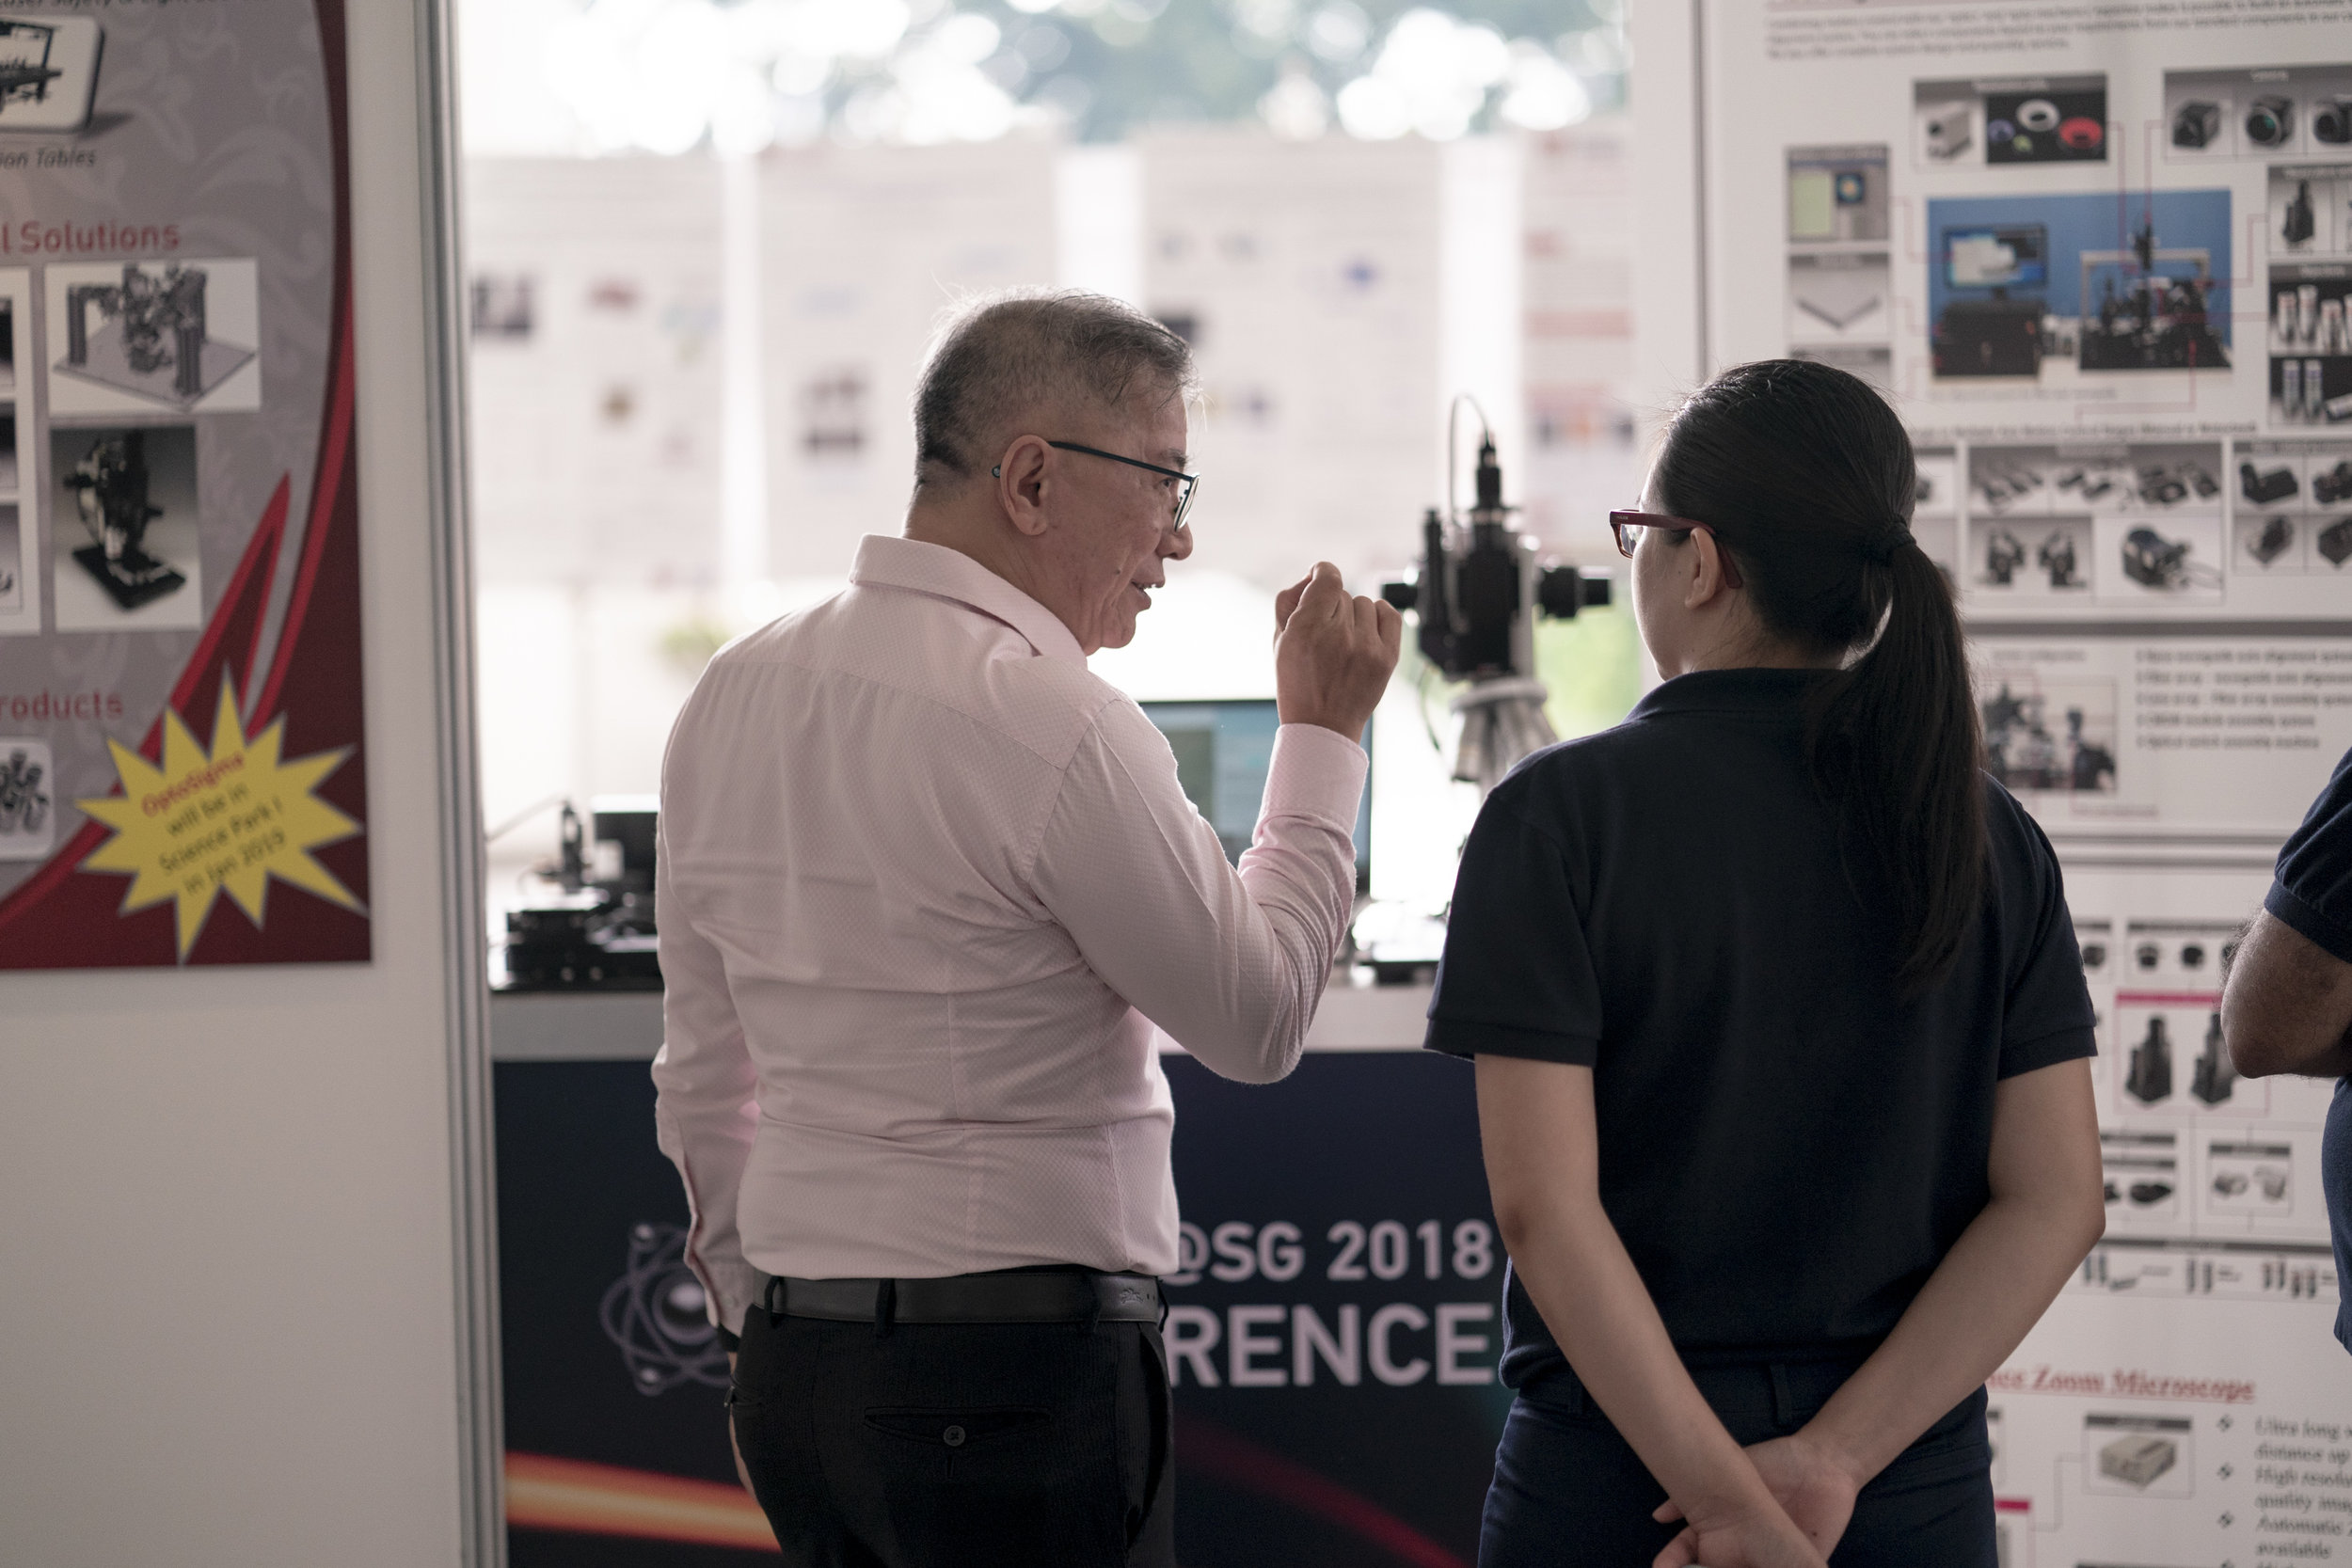 TPI Photonics SG 2018 Conference n Exhibition 0068rc.jpg